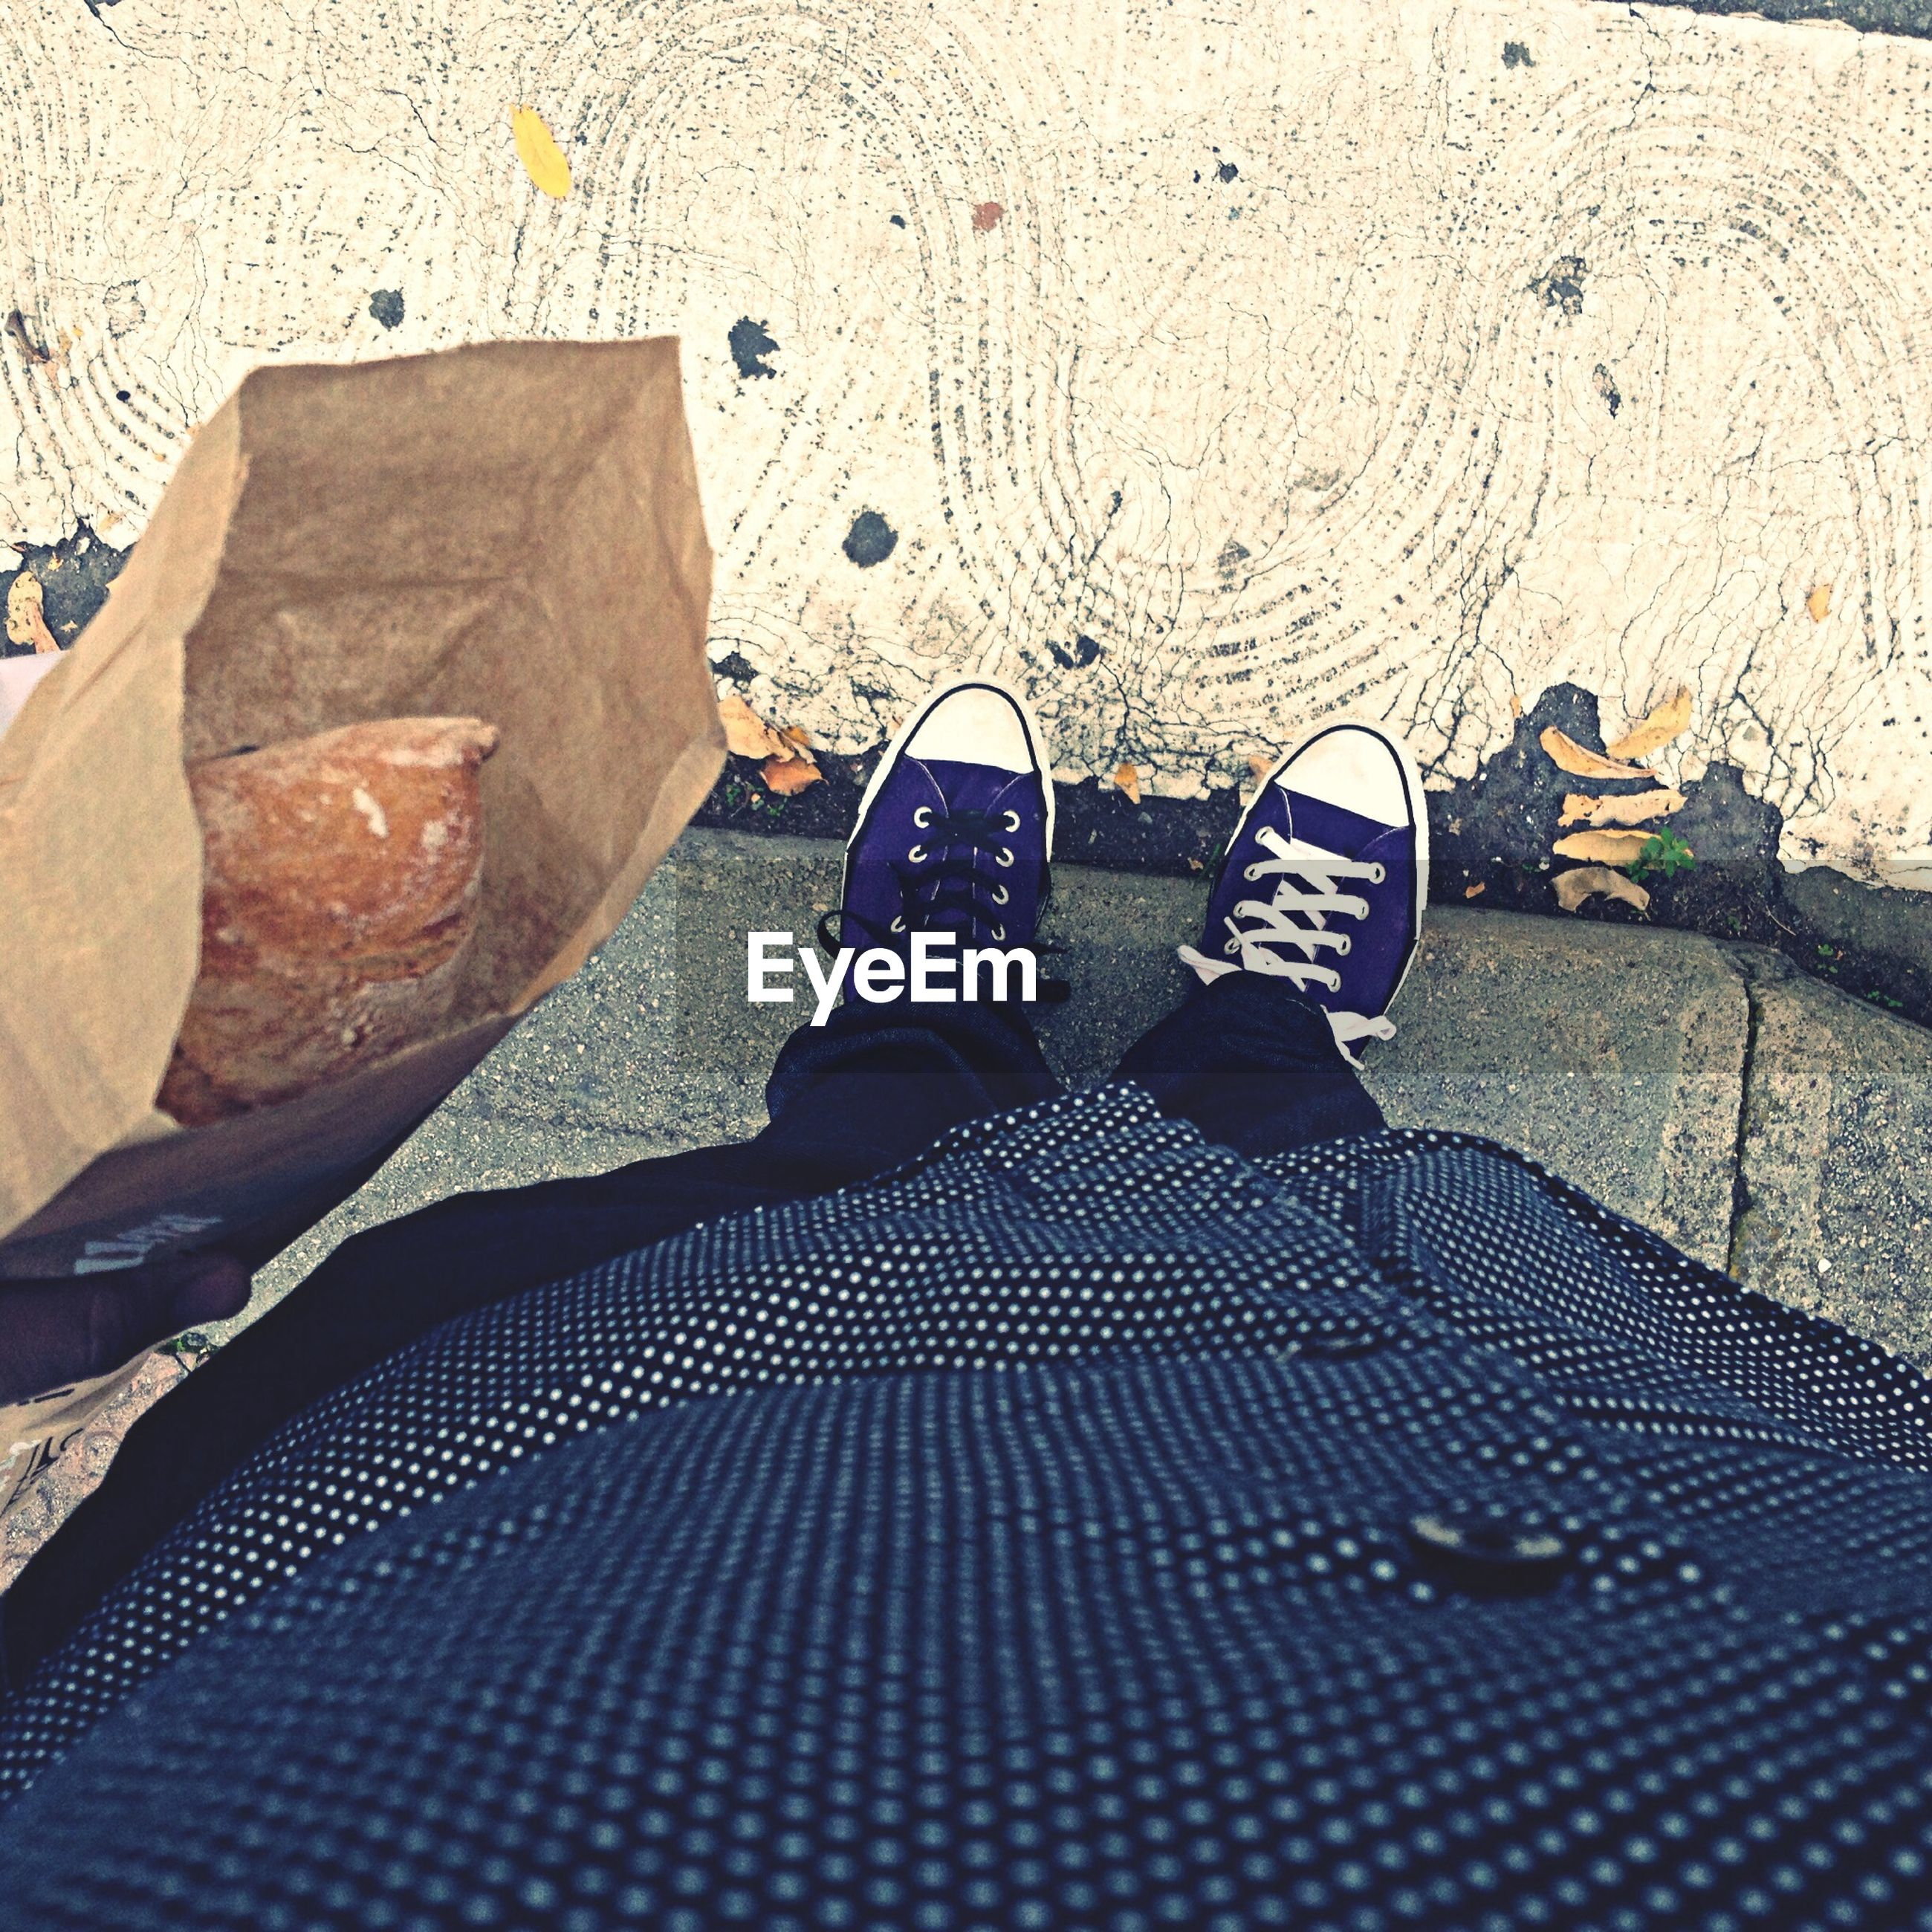 lifestyles, leisure activity, high angle view, low section, men, shadow, shoe, sunlight, standing, person, casual clothing, day, street, outdoors, jeans, personal perspective